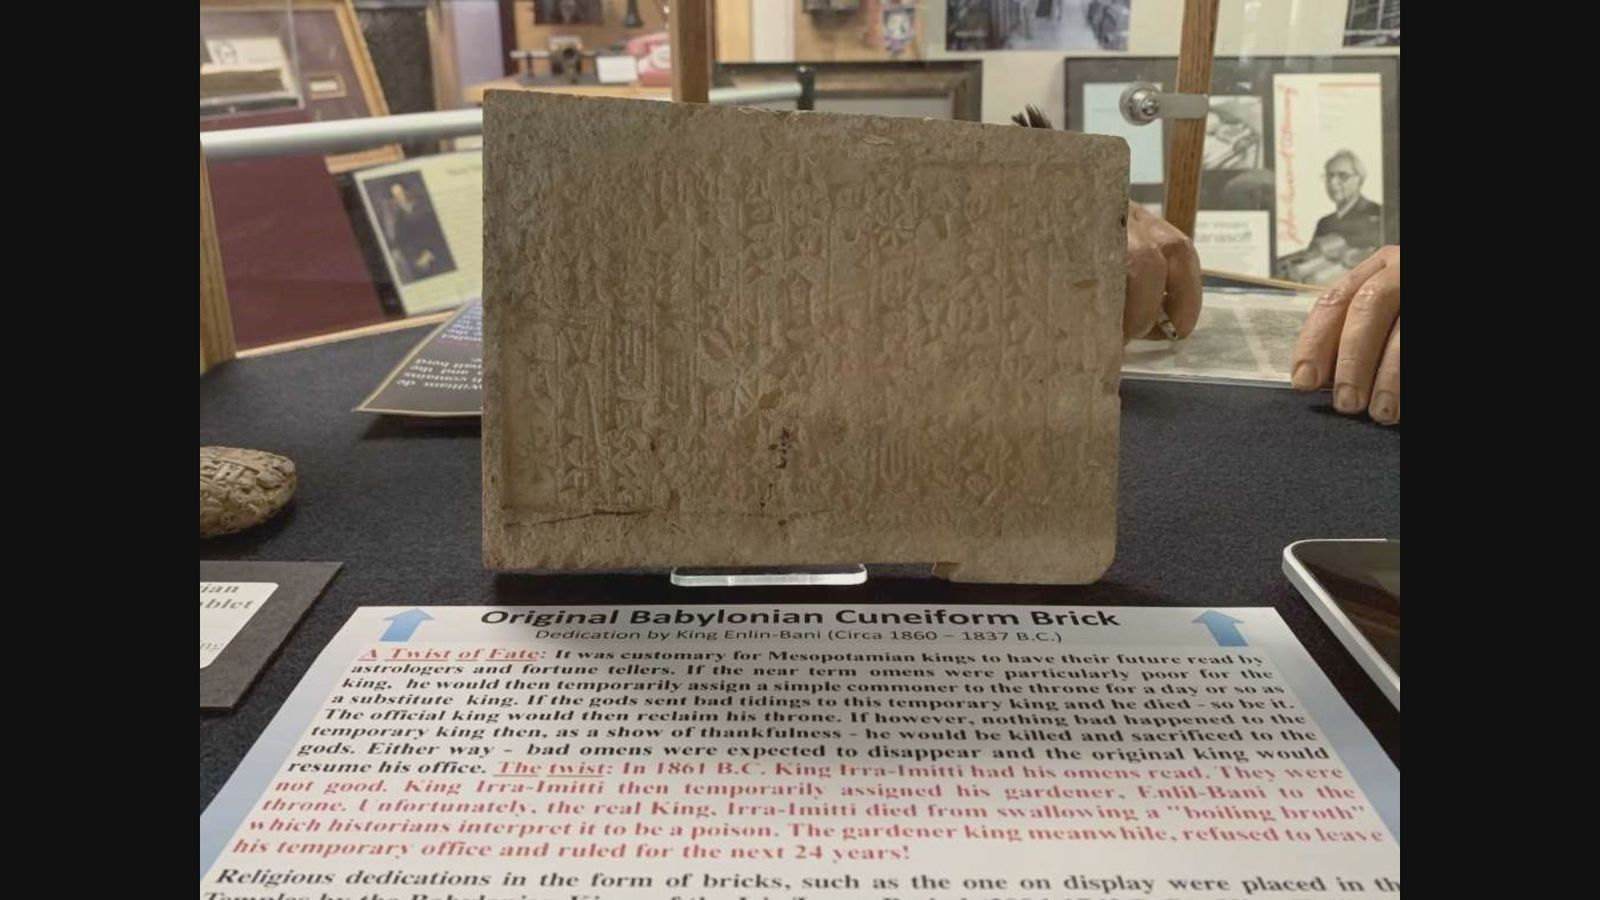 (photo courtesy: American Computer and Robotics Museum)An original Babylonian tablet dating back 4,000 years ago.